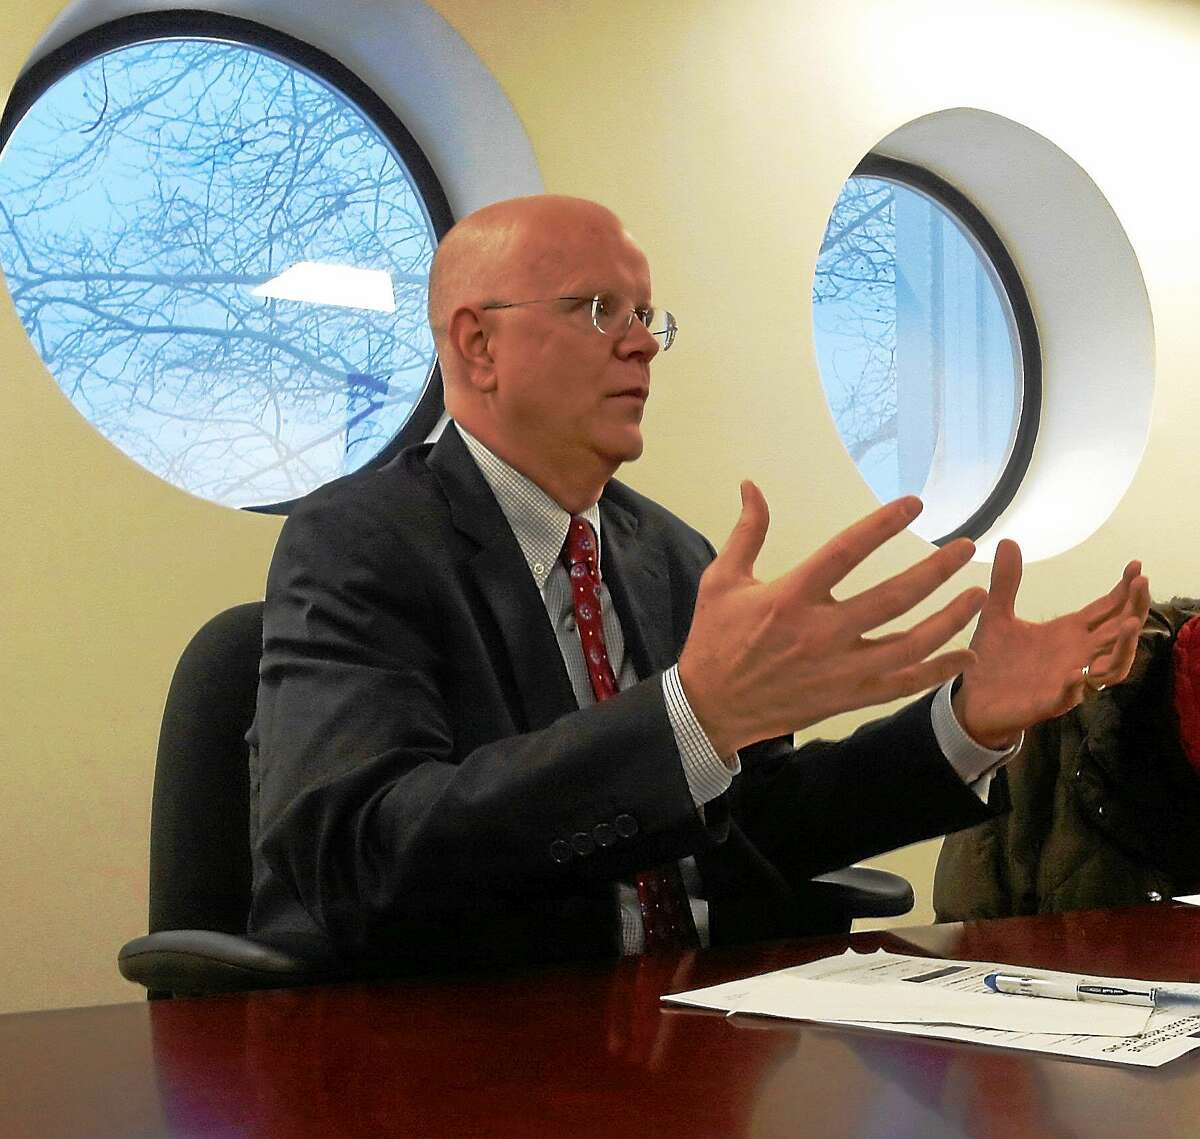 Connecticut Comptroller Kevin Lembo makes a point during an editorial board meeting at the New Haven Register.